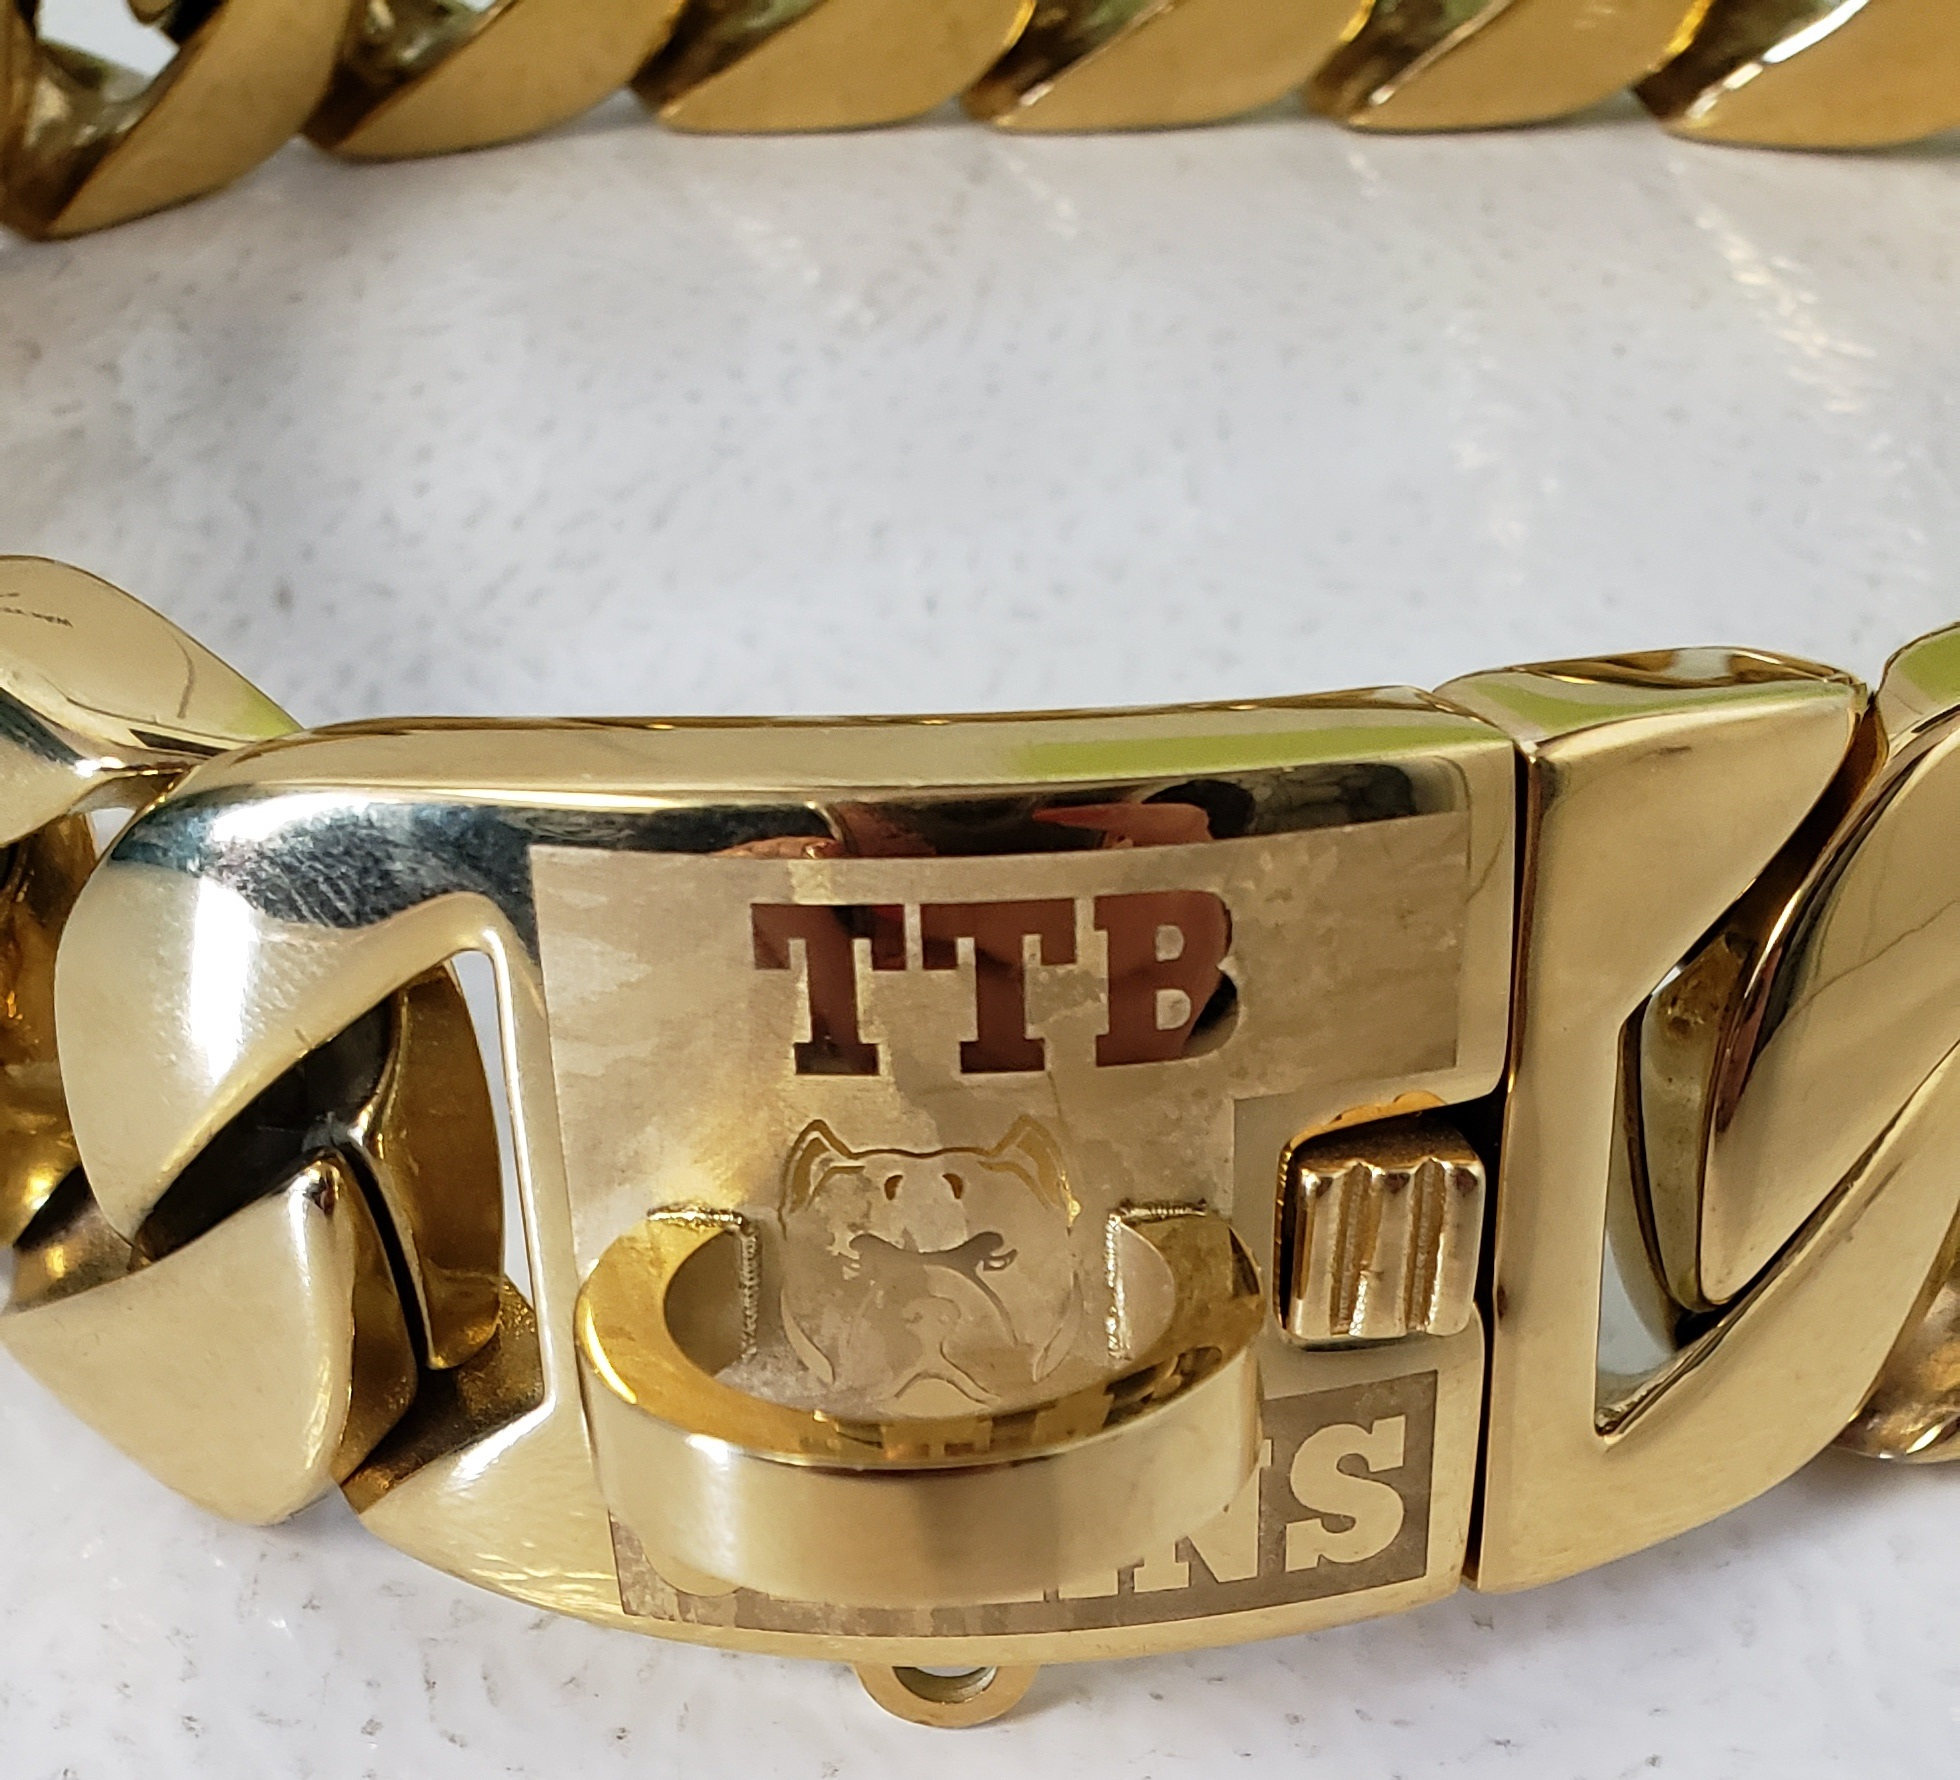 18K GOLD PLATED $200